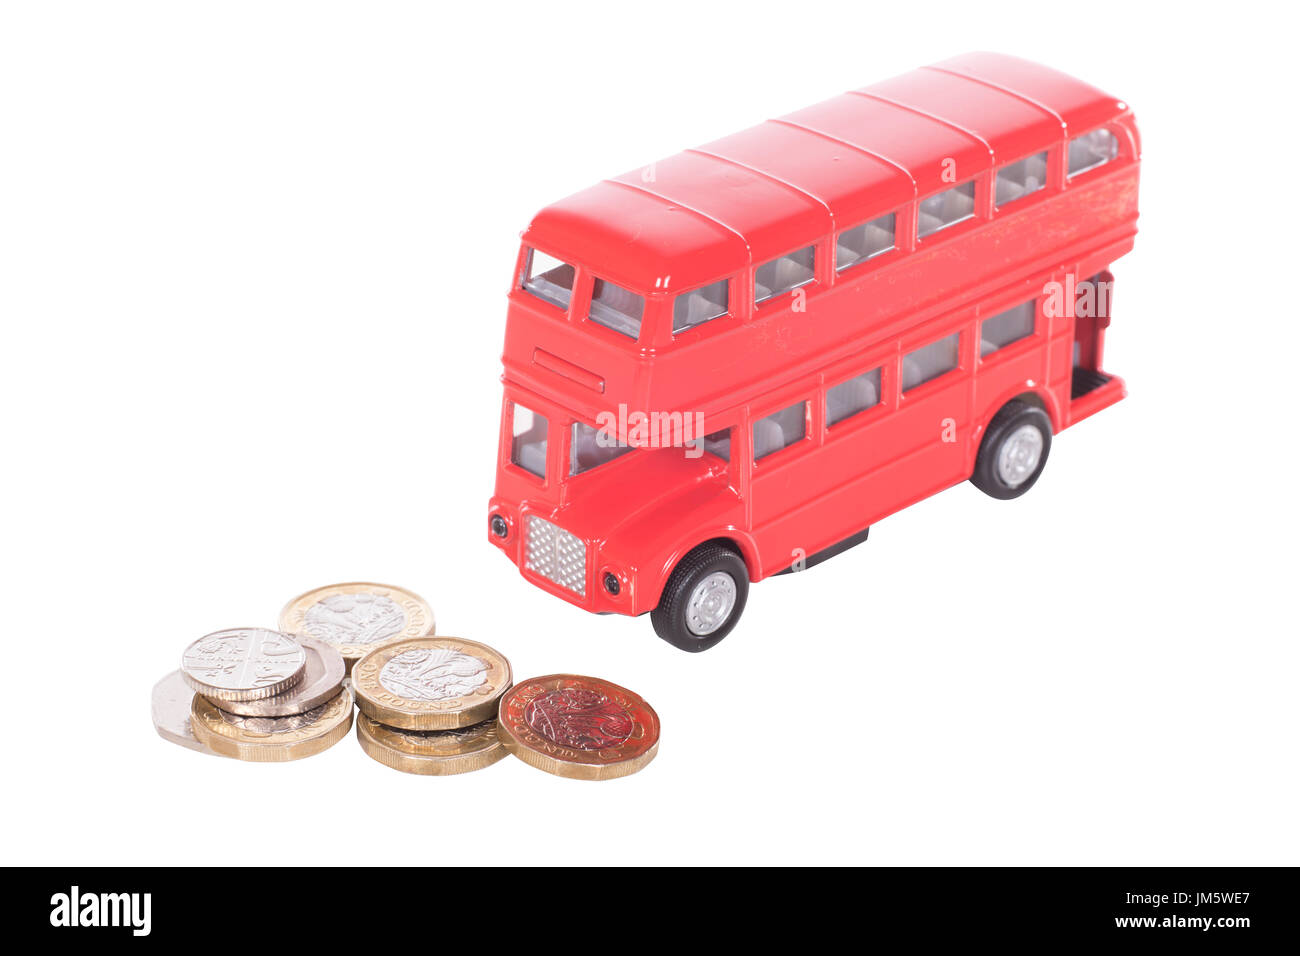 Pile of UK cash money in loose coins with a model red double-decker bus in a concept of the cost of public transport and commuting - Stock Image